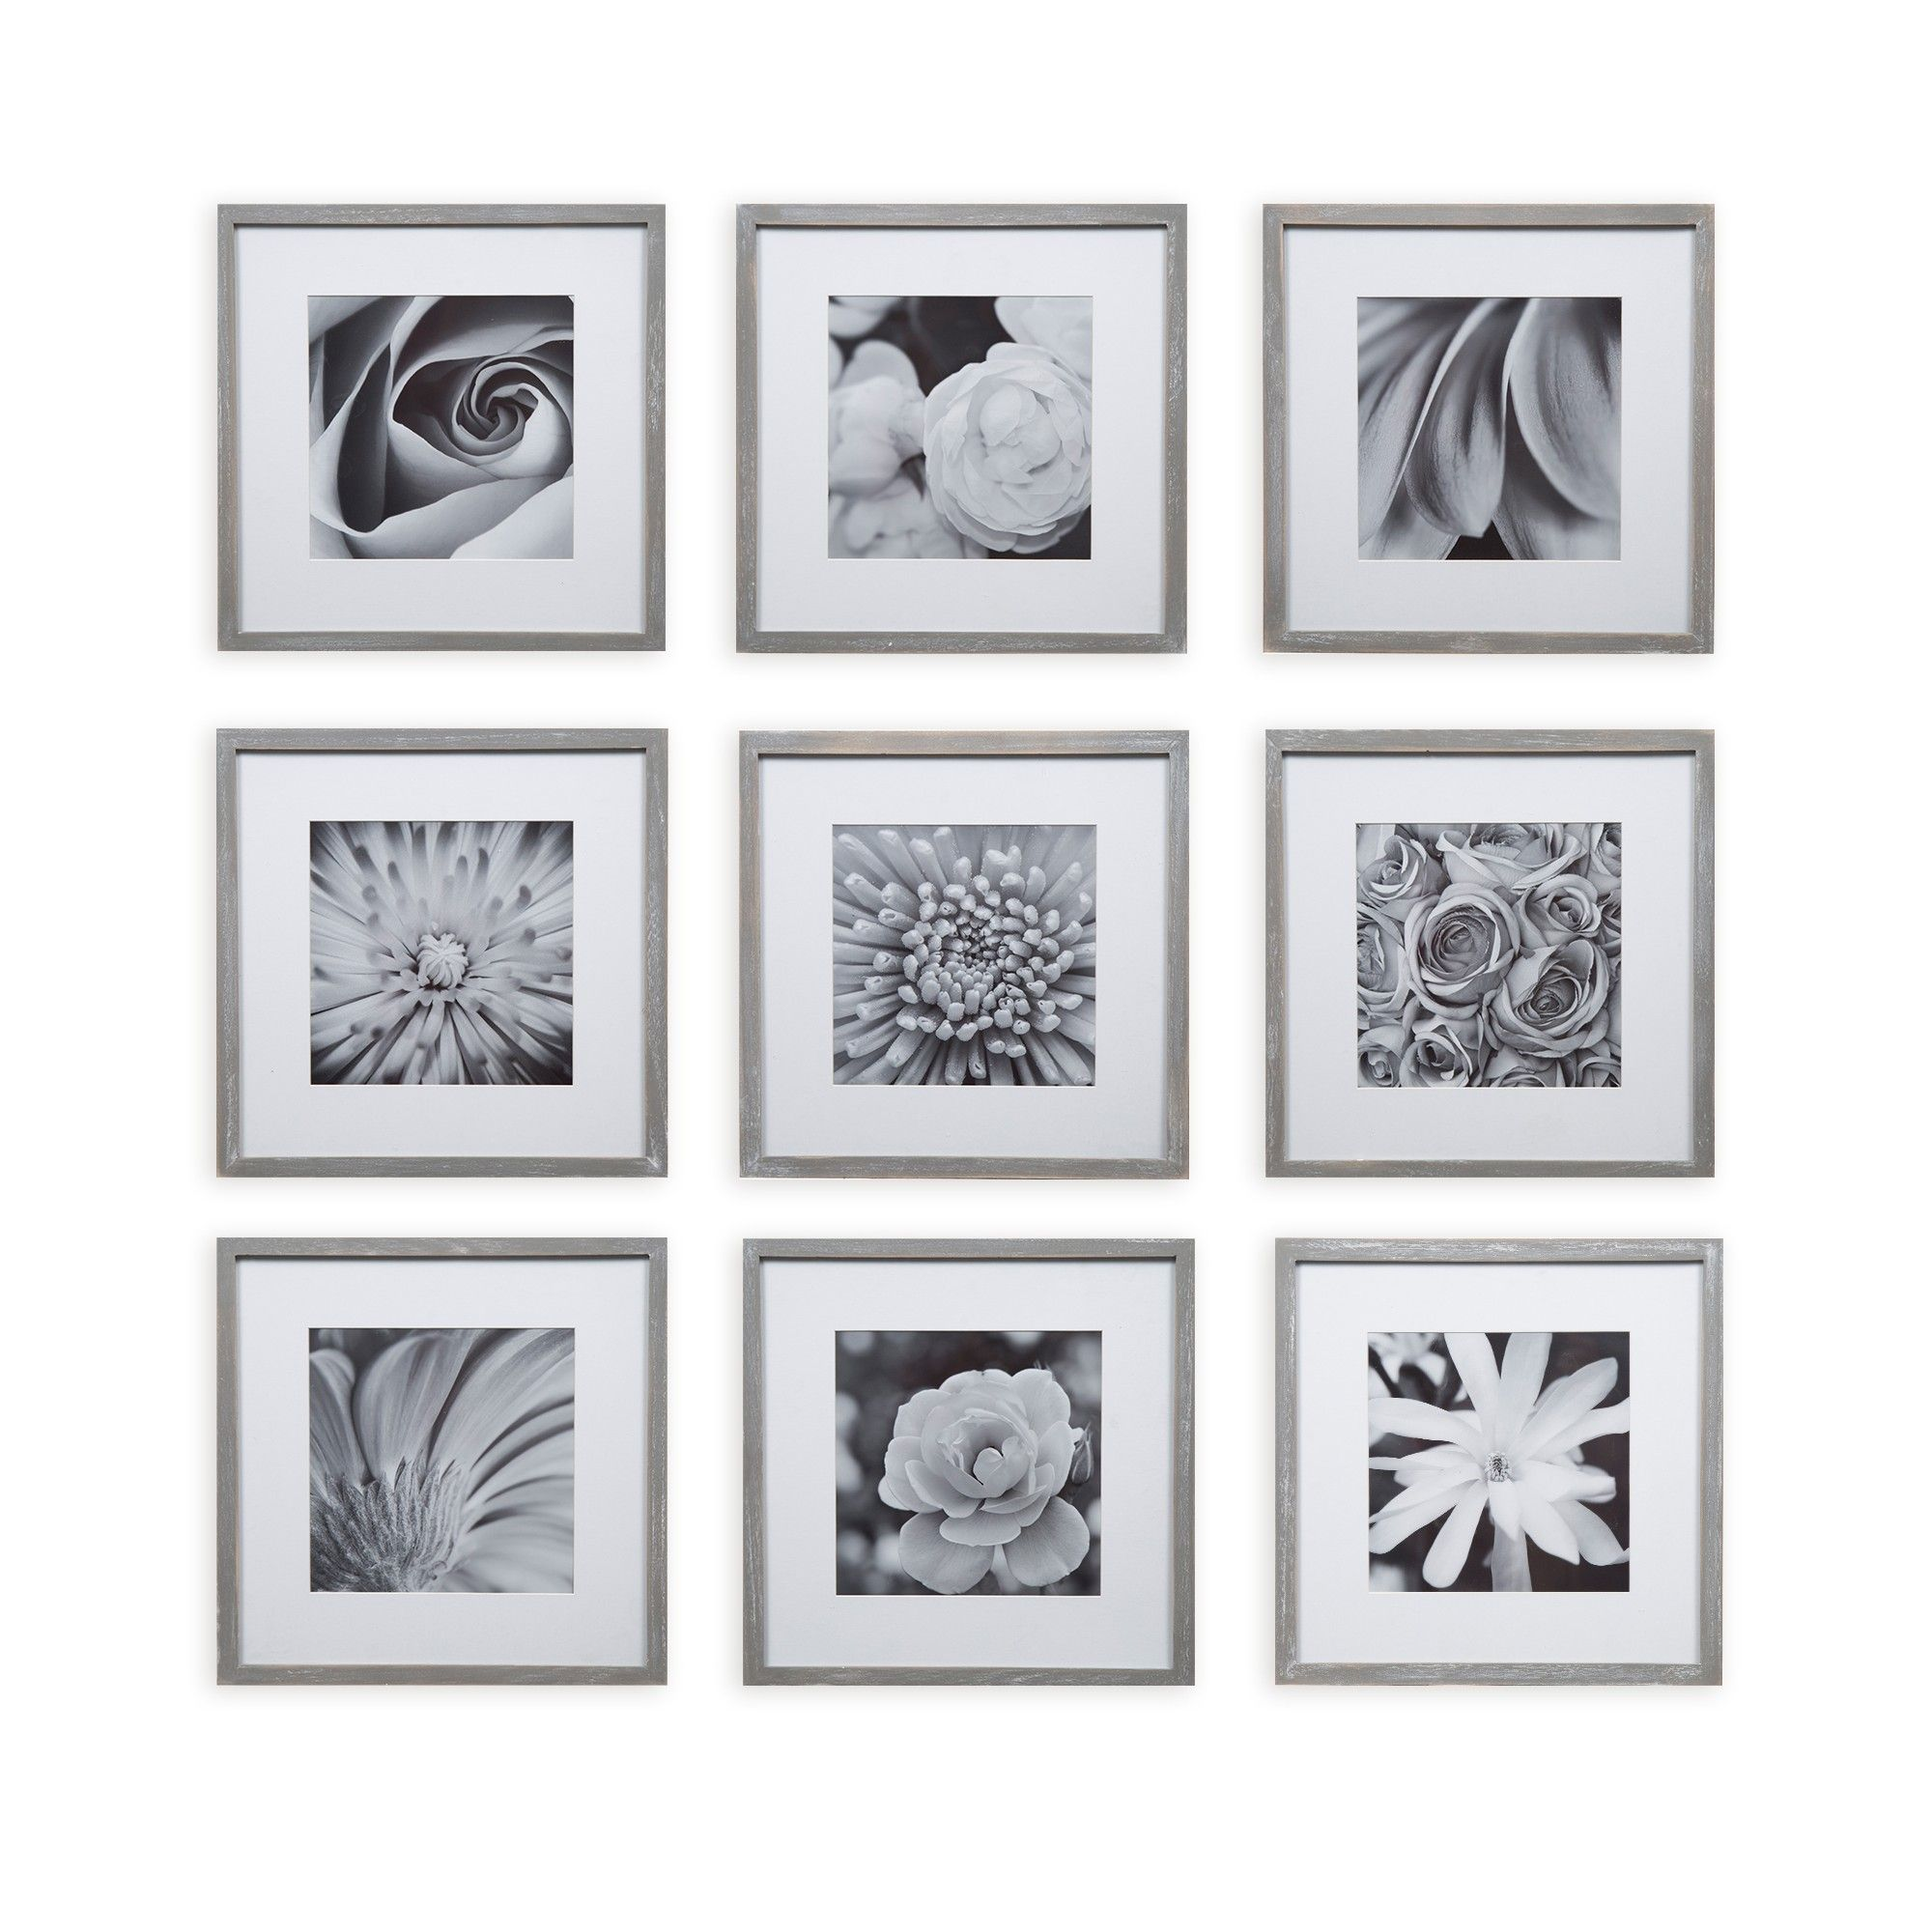 8 X 8 9pc Square Photo Wall Gallery Kit Gray Gallery Perfect Frames On Wall Picture Frame Gallery Photo Wall Gallery